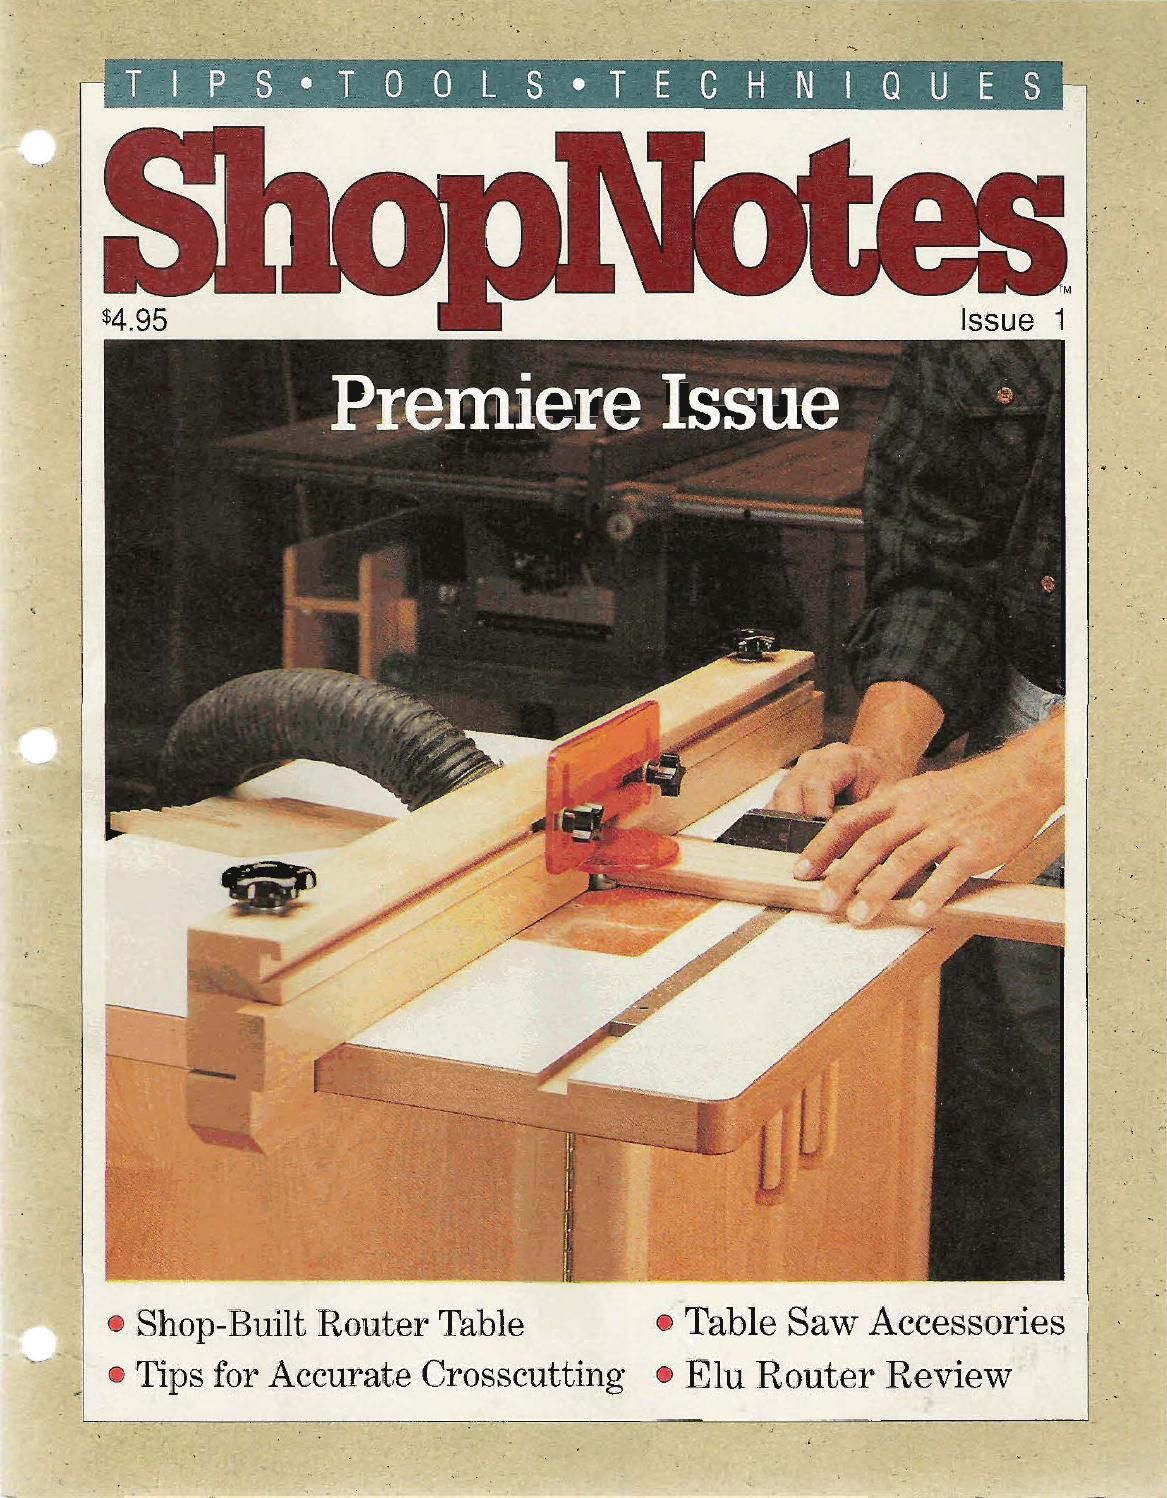 Shopnotes issue 01 by adrian kuney issuu shopnotes pinterest router table shopnotes issue 01 by adrian kuney issuu greentooth Images